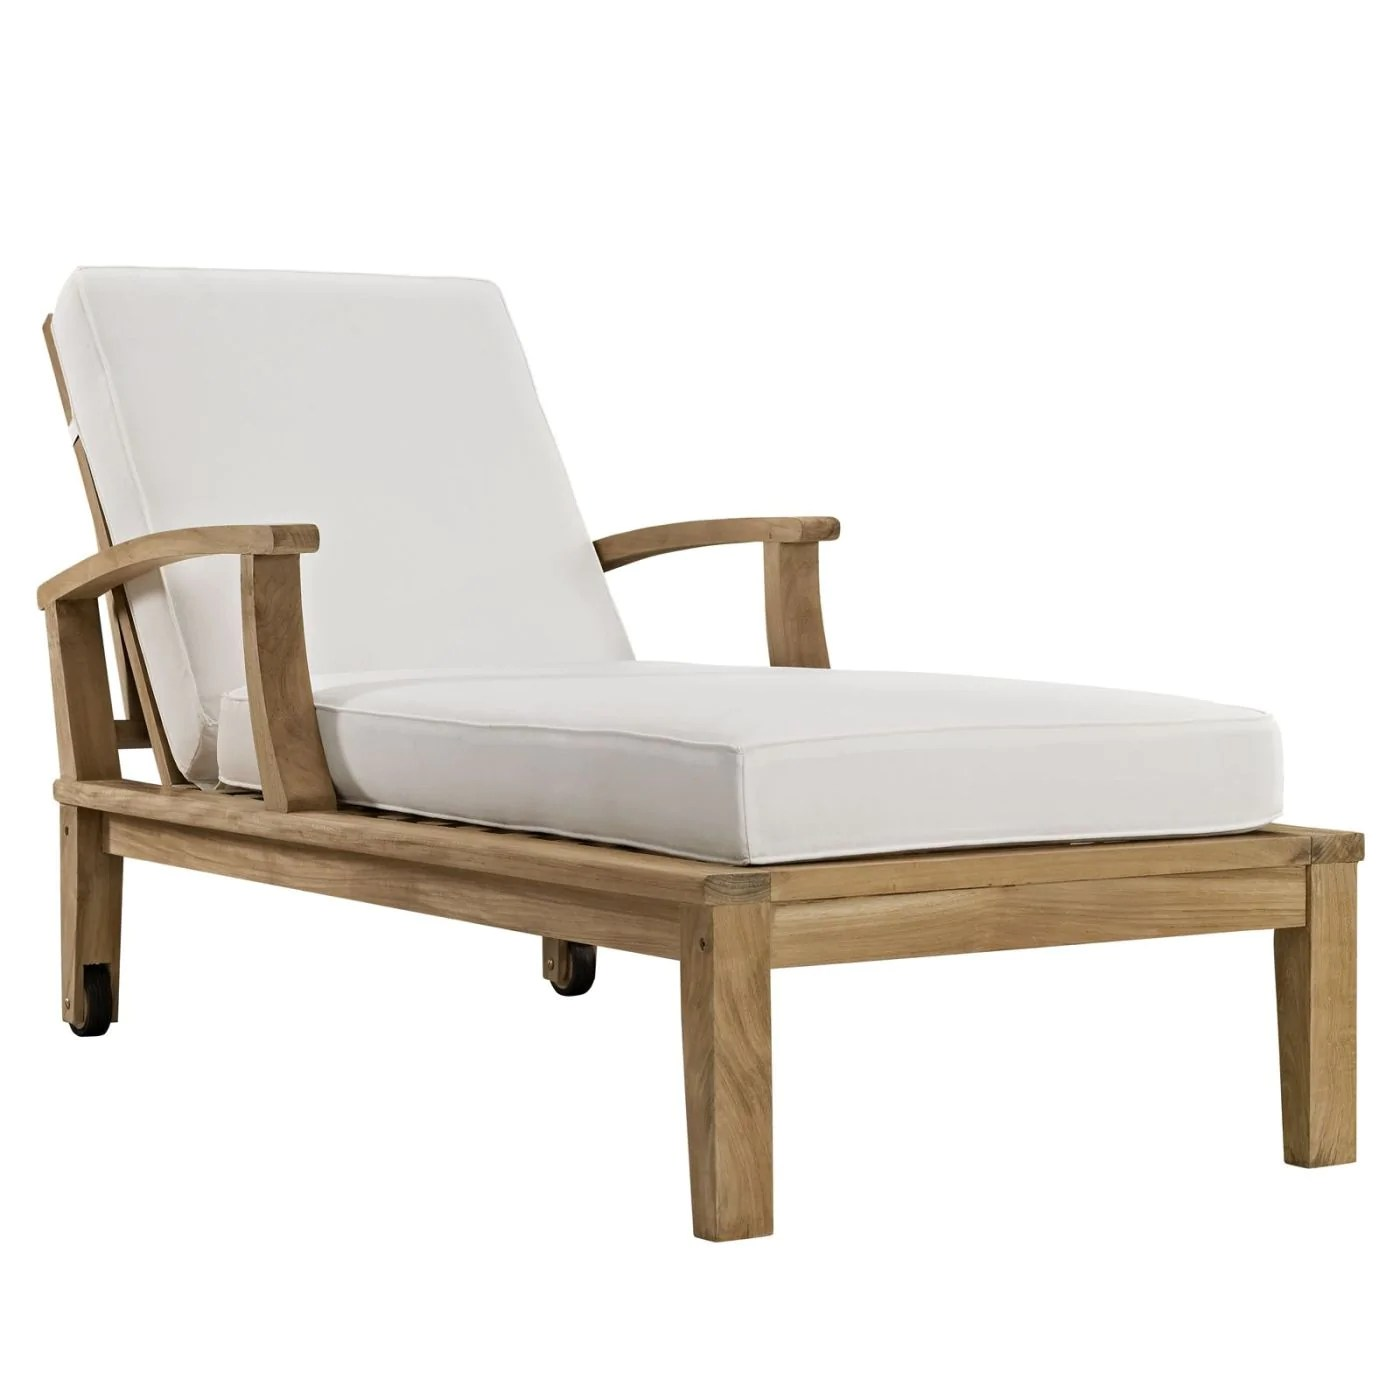 Teak Chaise Lounge Chairs Modway Outdoor Lounge Chairs On Sale Eei 1151 Nat Whi Set Marina Outdoor Patio Teak Single Chaise Only Only 742 75 At Contemporary Furniture